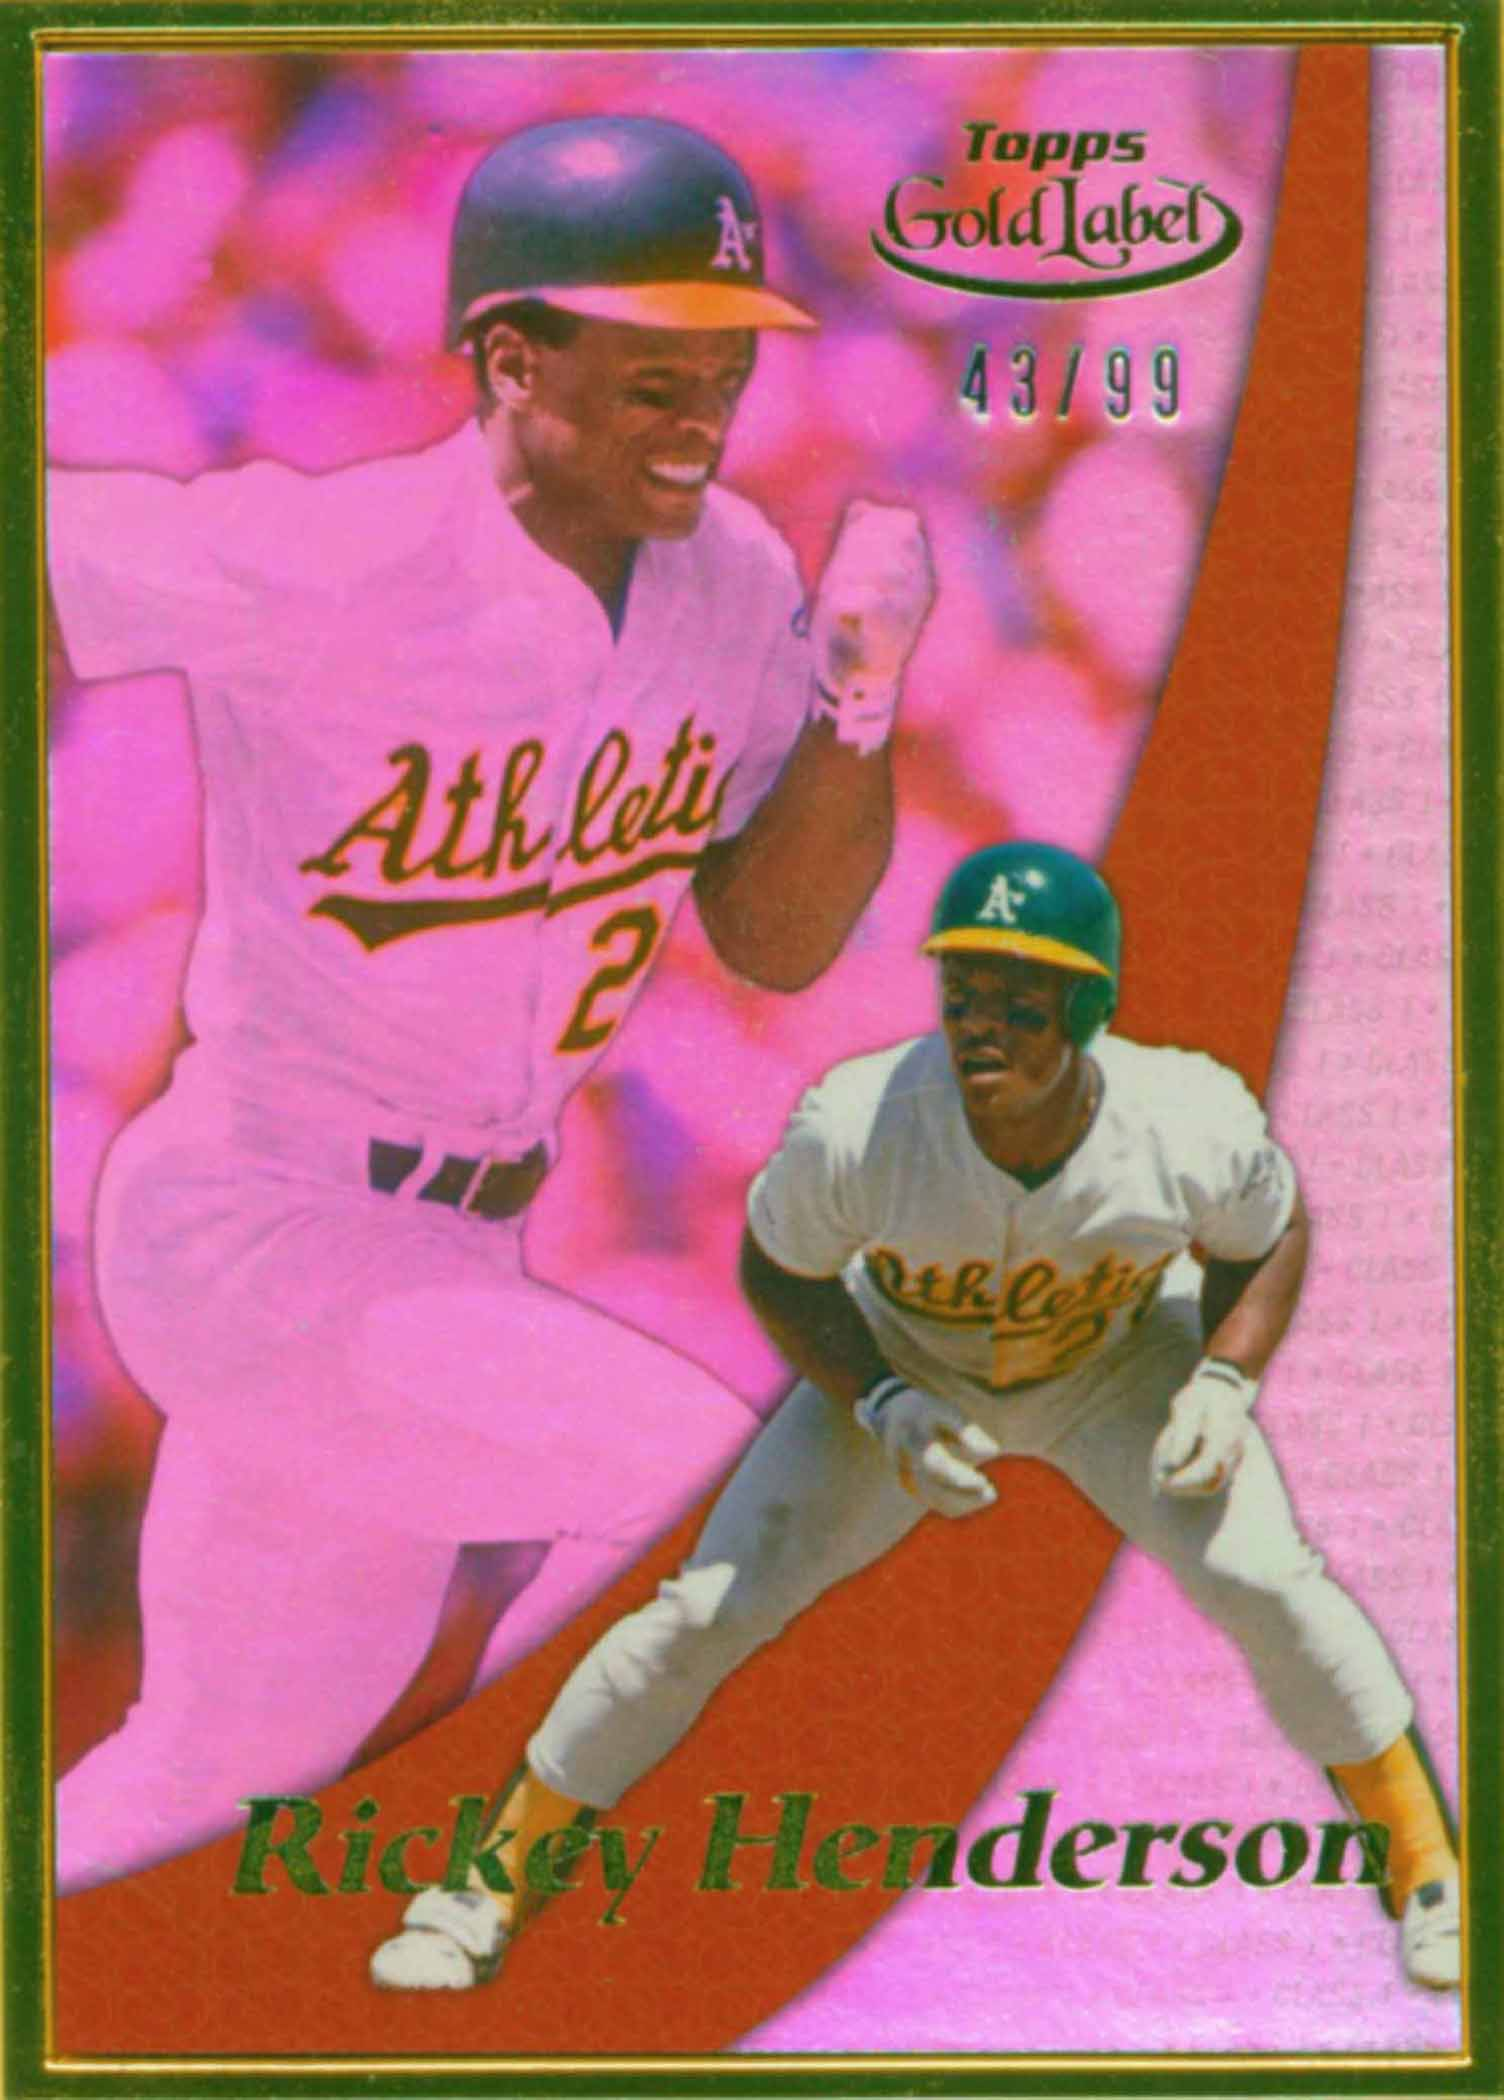 2014 Topps Gold Label